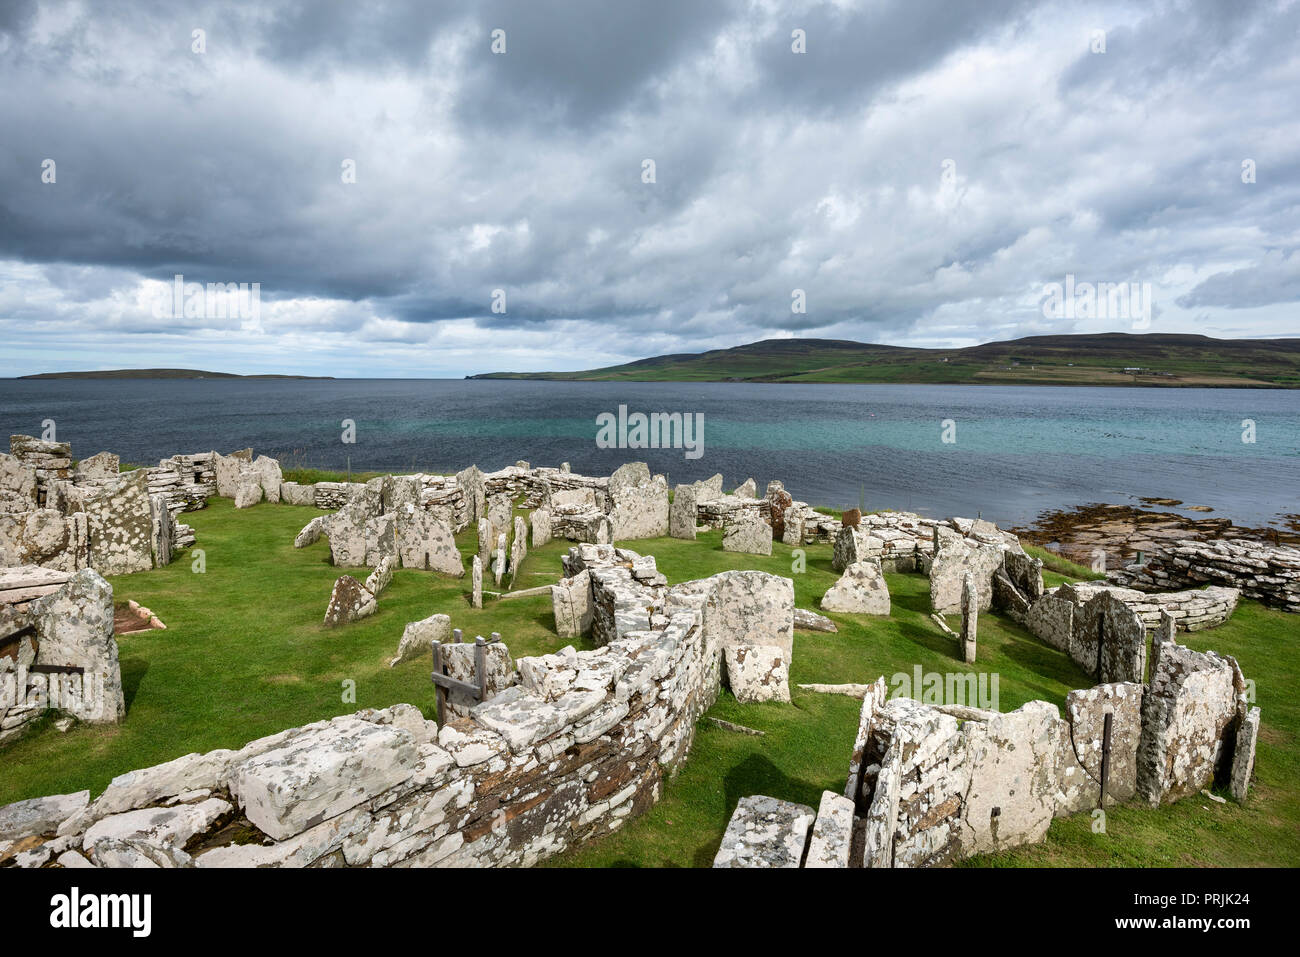 Iron Age settlement ruins, Broch of Gurness, Tingwall, Orkney Islands, Scotland, United Kingdom Stock Photo